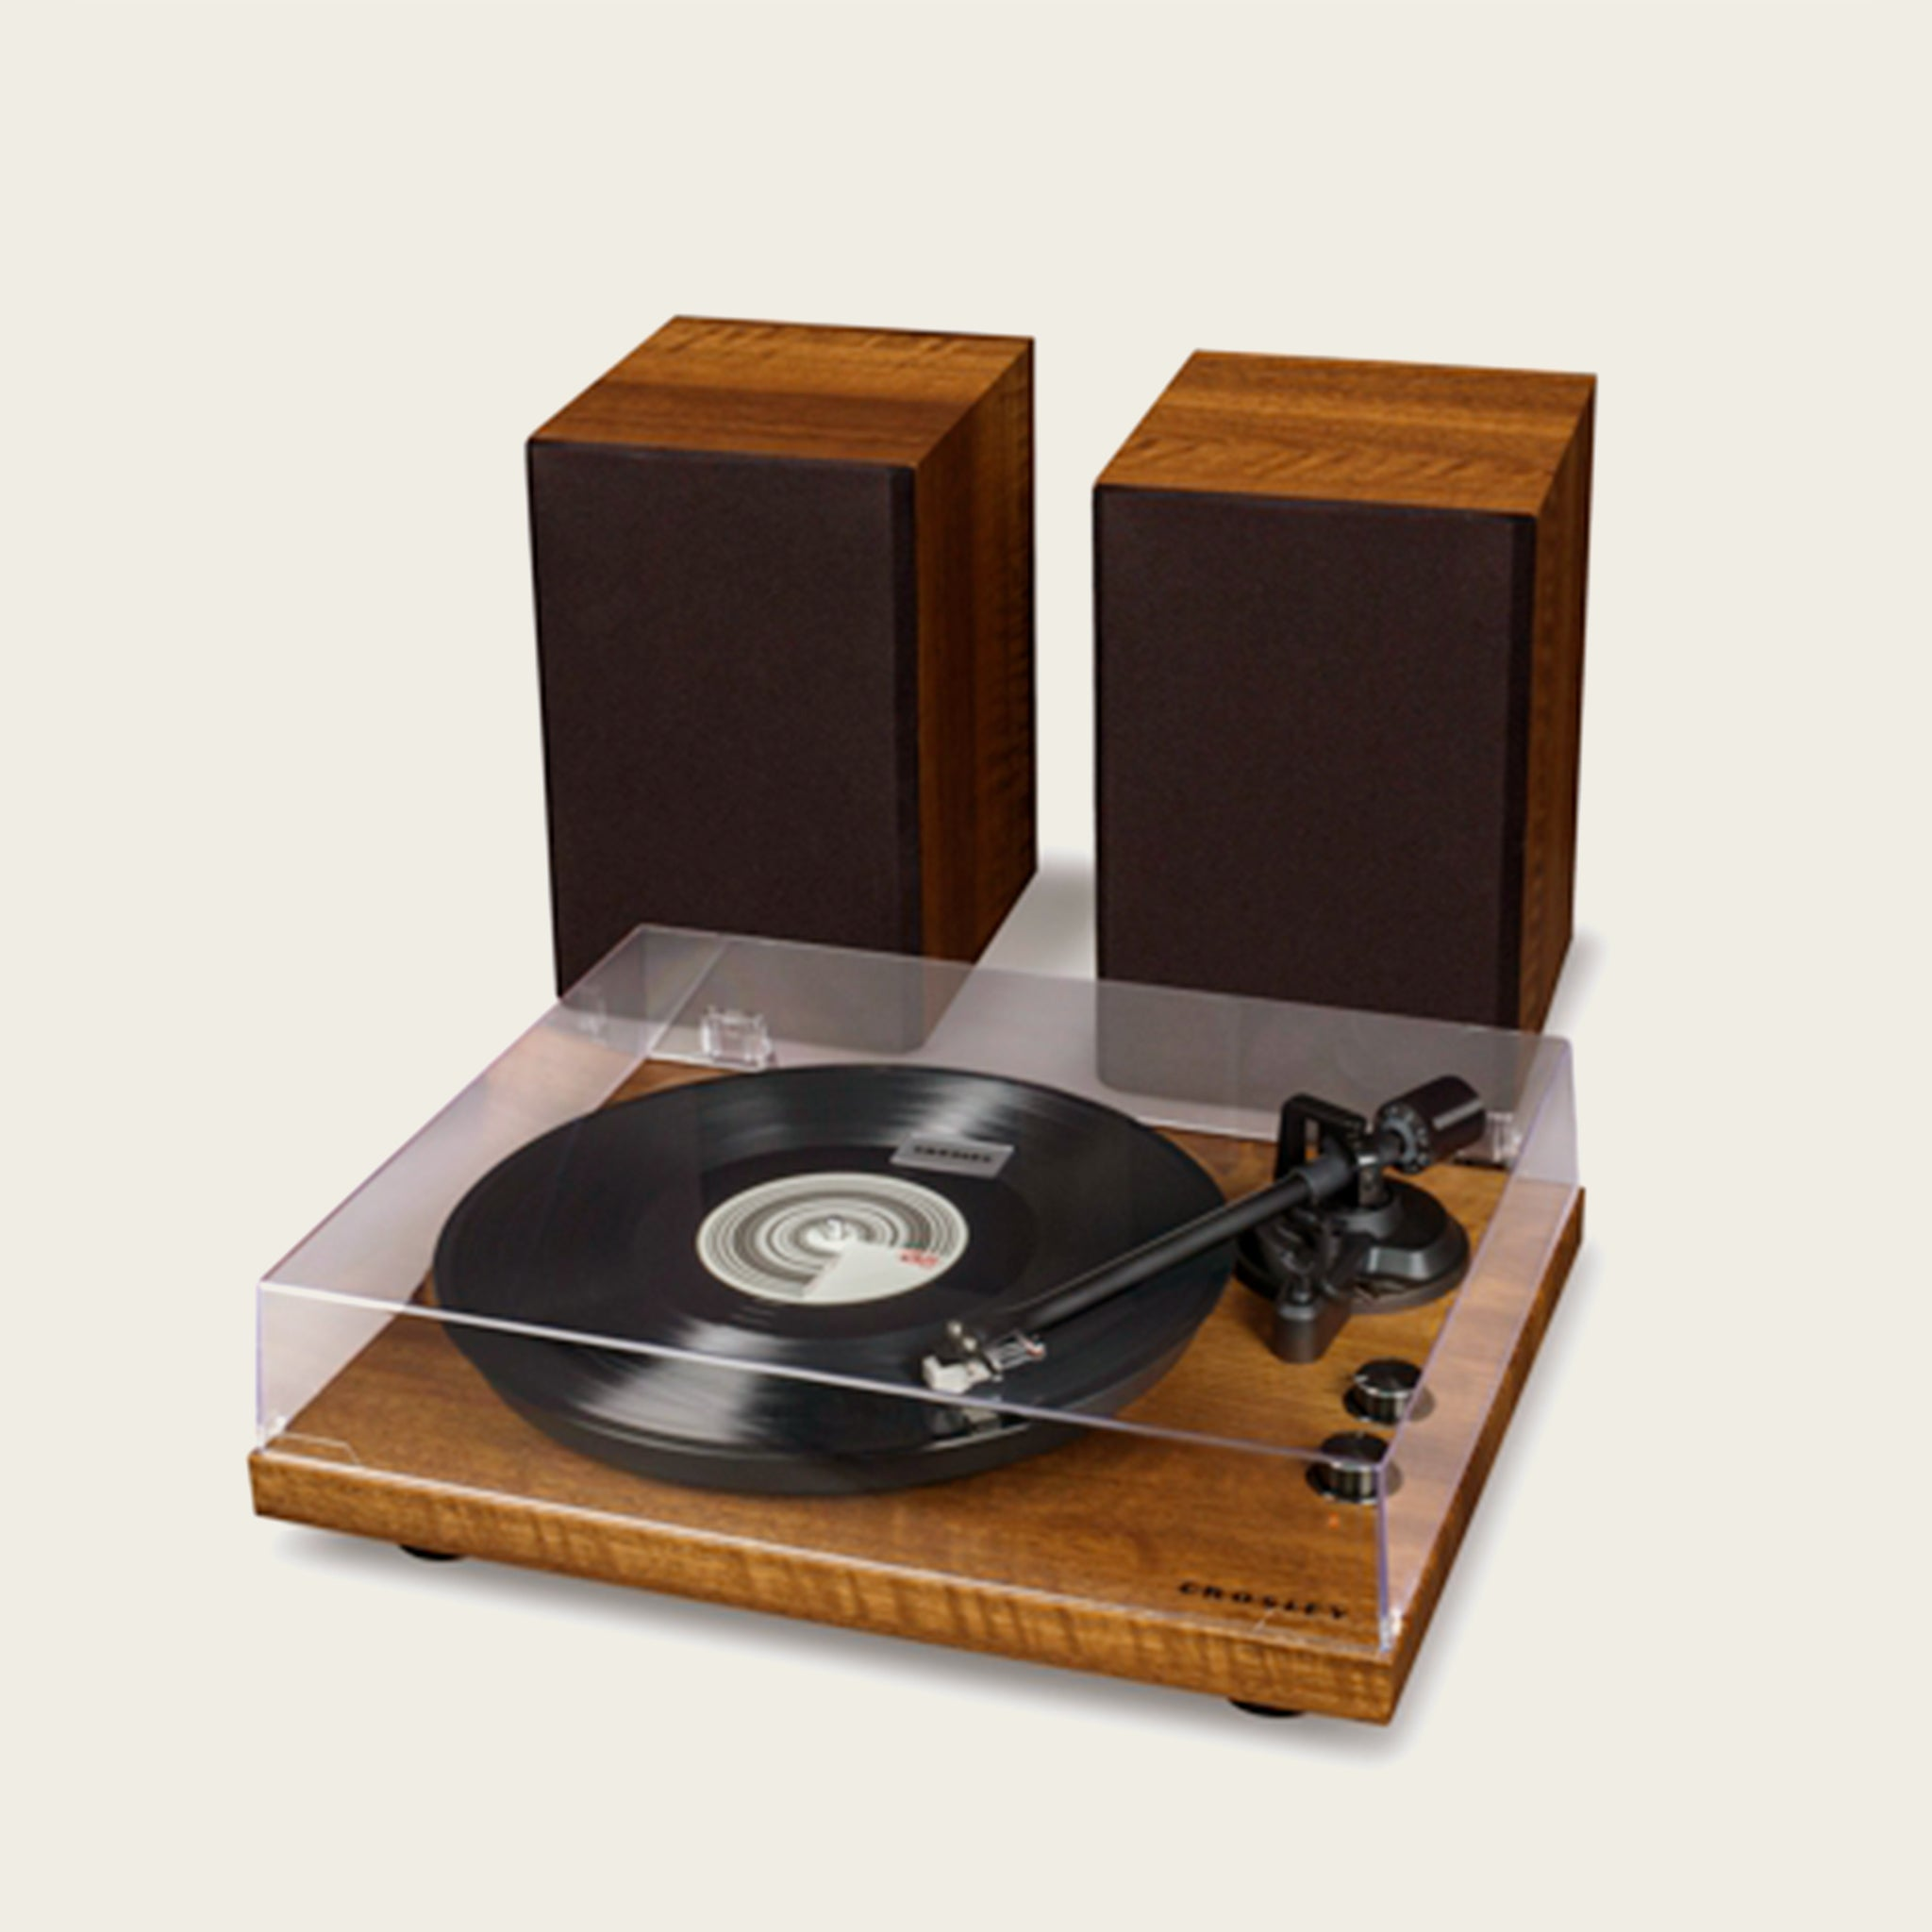 C62 Turntable System - Walnut - Blackbird General Store